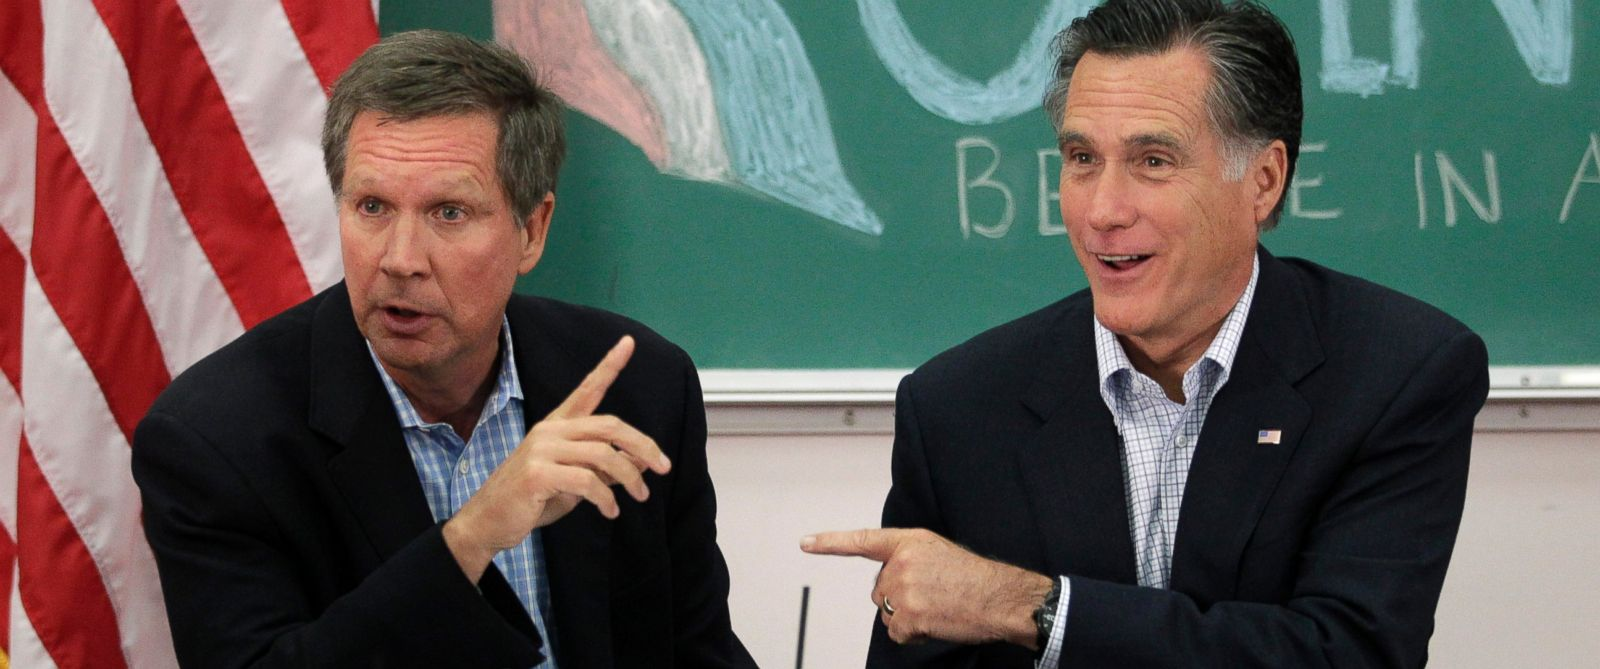 PHOTO:In this file photo, Mitt Romney and John Kasich point to each other during a roundtable discussion with students at Otterbein University in Westerville, Ohio, April 27, 2012.